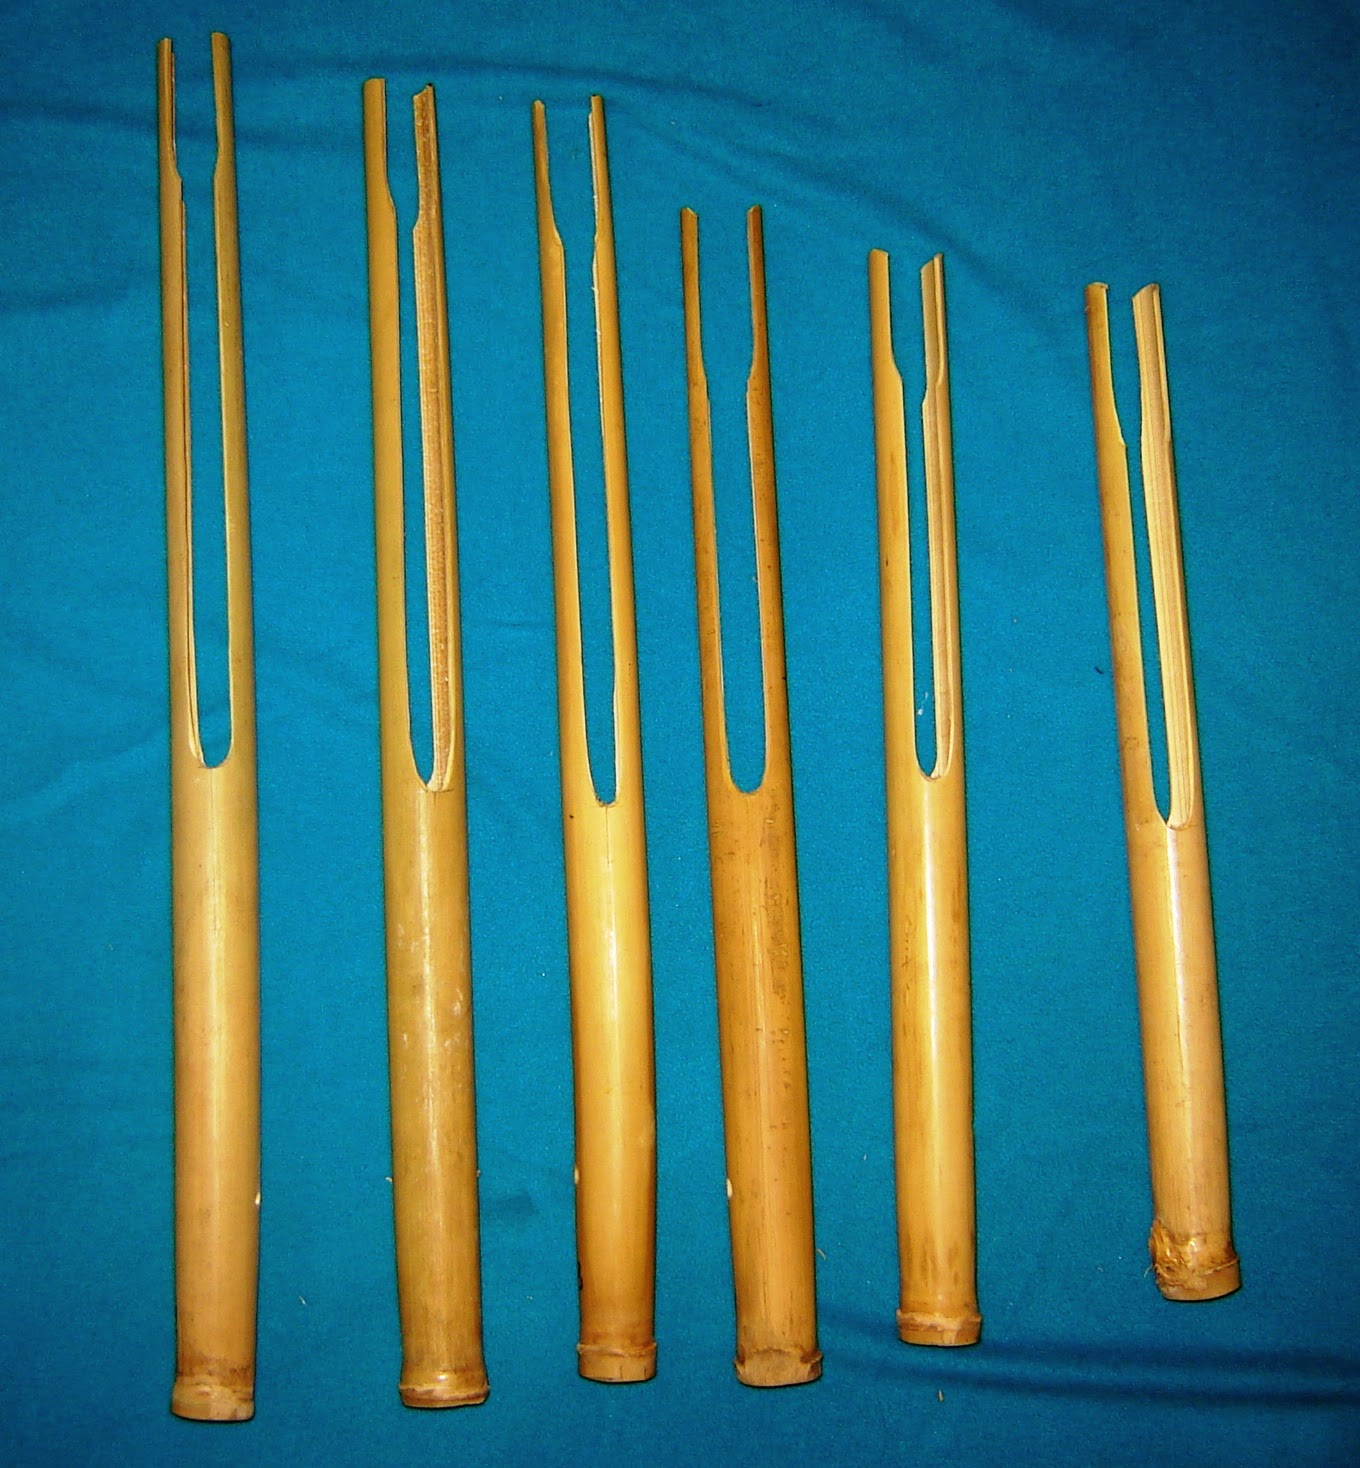 musical instrument and tonga Music of tonga refers to music derived from the island tonga in the islands of polynesia  tongan music can be either very emotional and somewhat modern with instrumental makeup including modern brass instruments, or conversely can be very primitive and consist of only drums and voices.